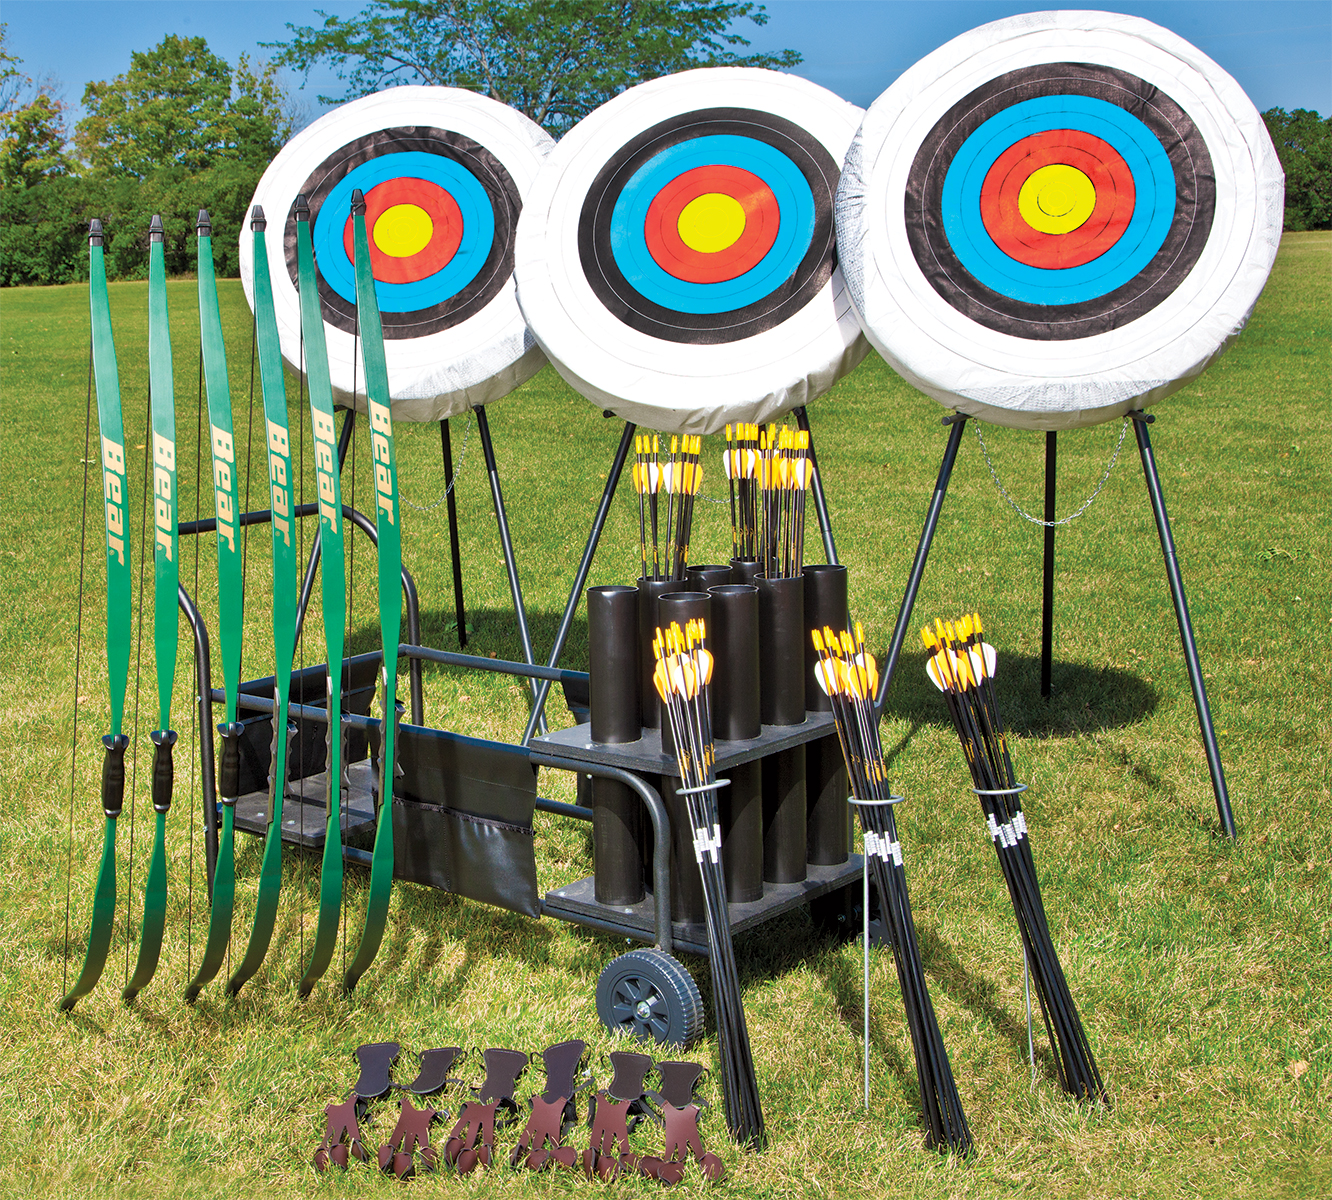 Complete archery pack with bows, arrows, arm guards, and targets with storage cart